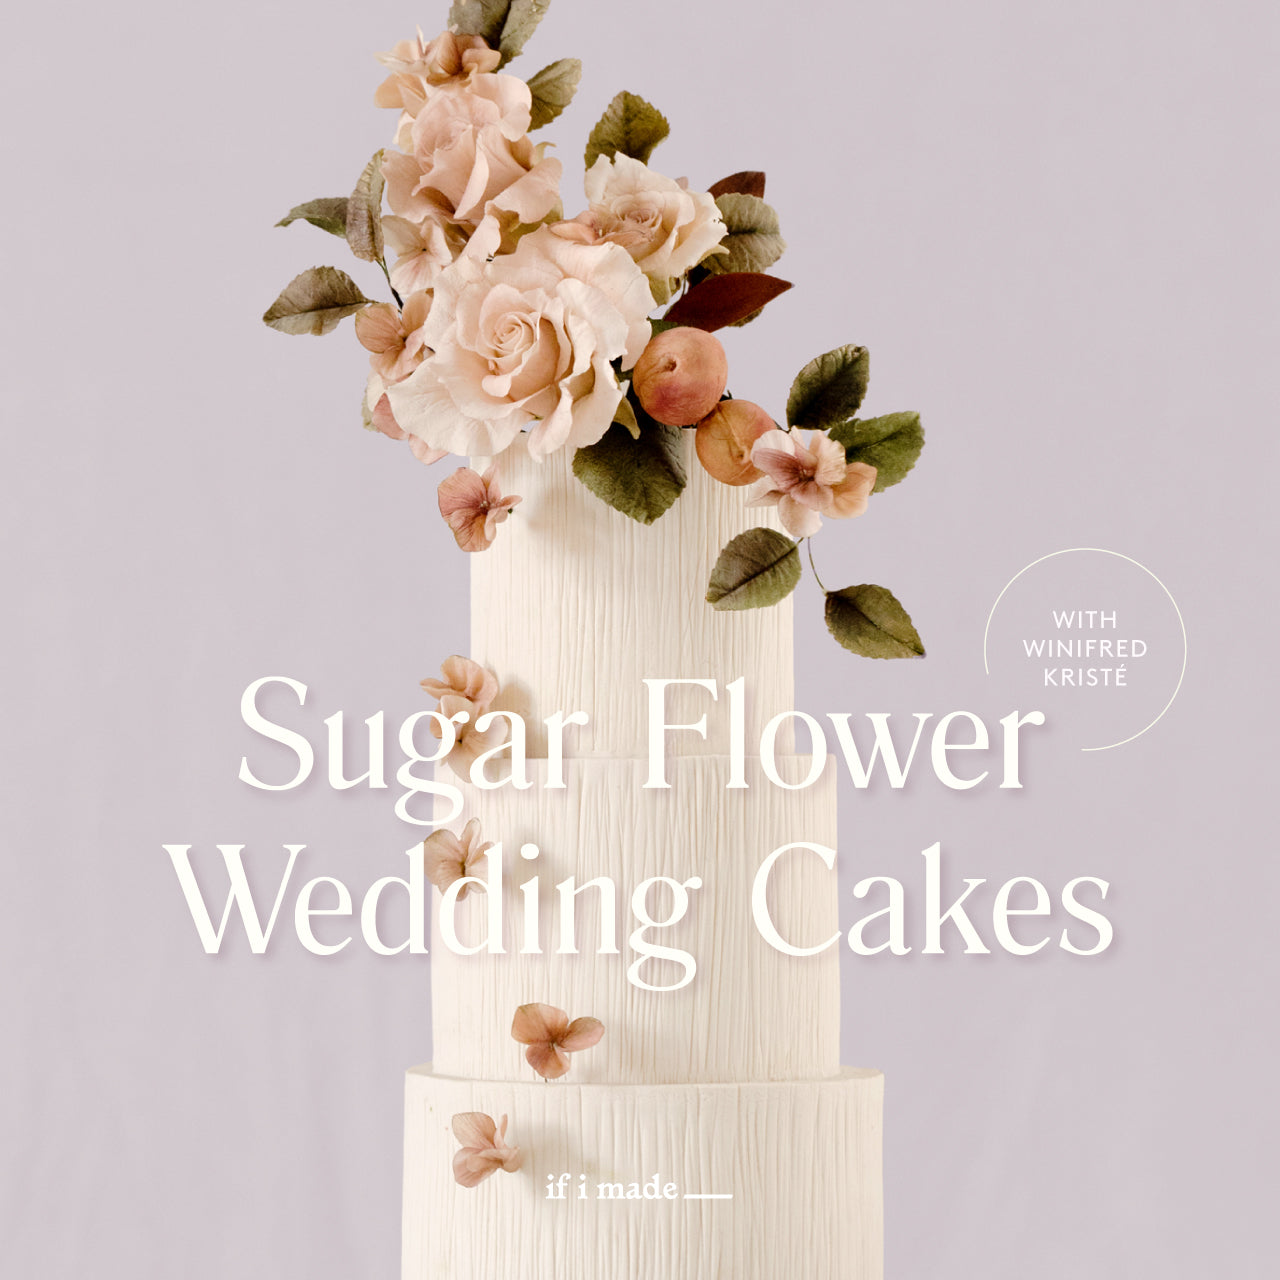 Sale: Sugar Flower Wedding Cakes with Winifred Kristé Cake